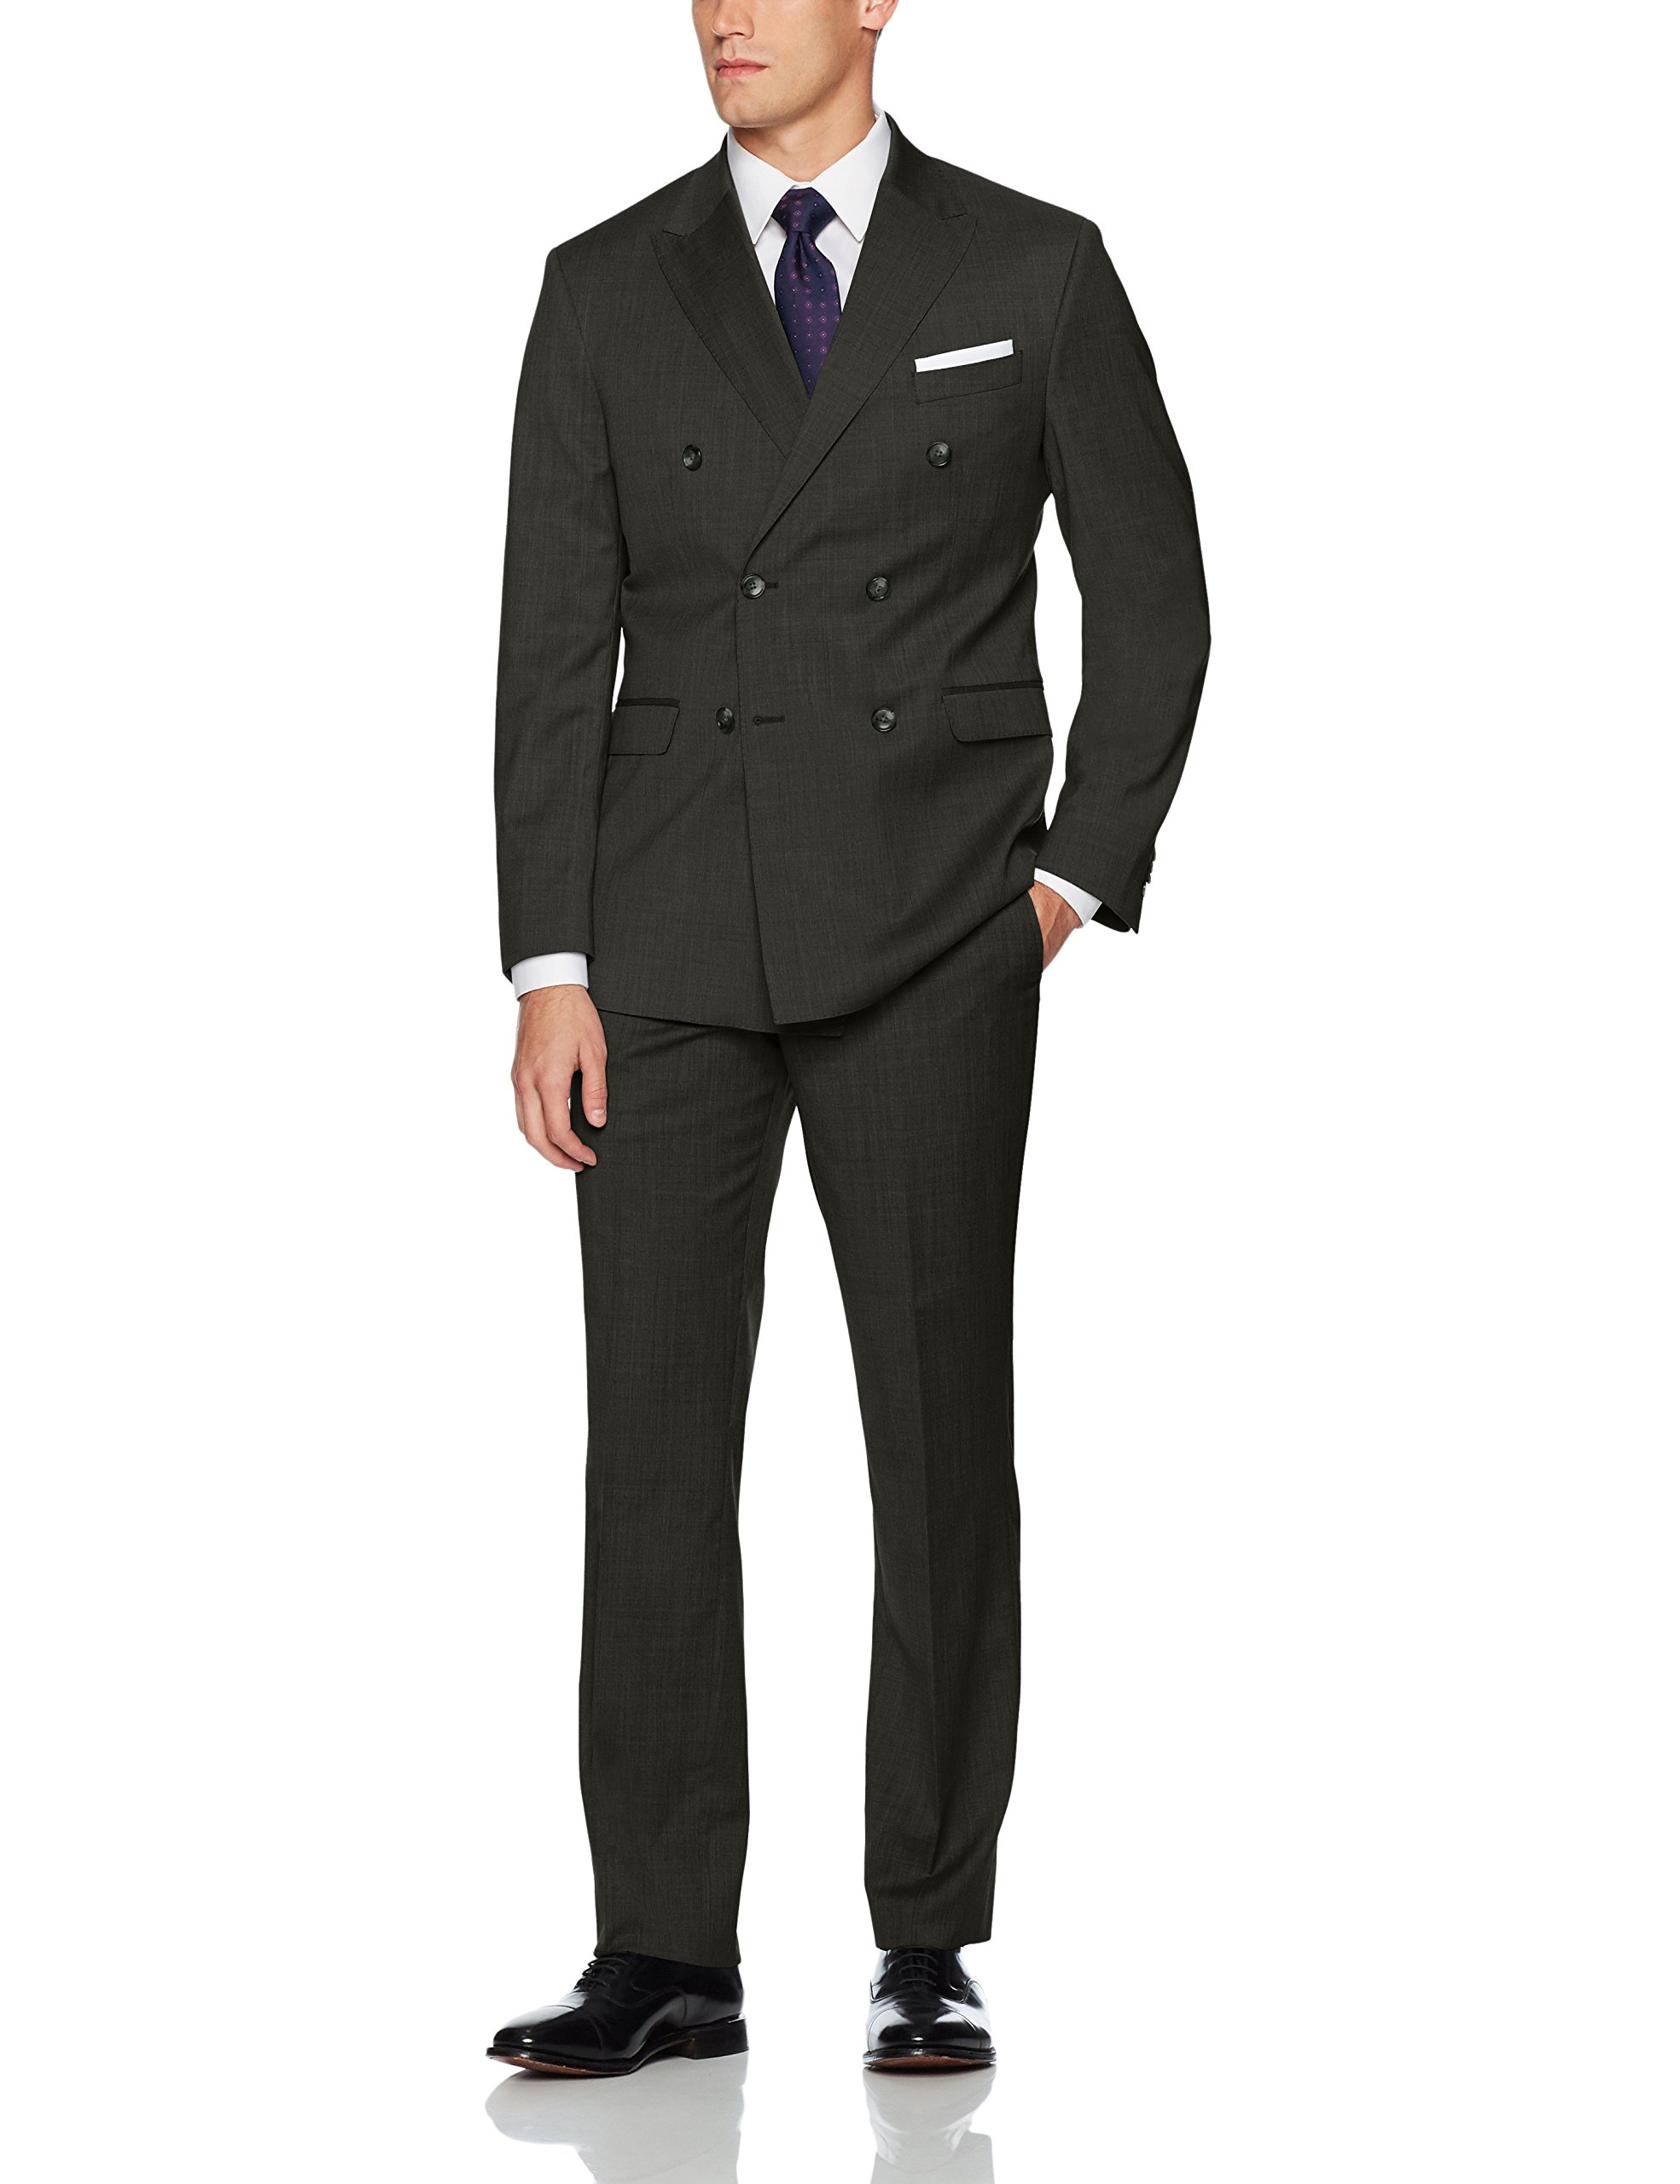 Kenneth Cole New York Men's Double Breasted Modern Fit 6 Button Suit, Charcoal Grey, 44 Regular